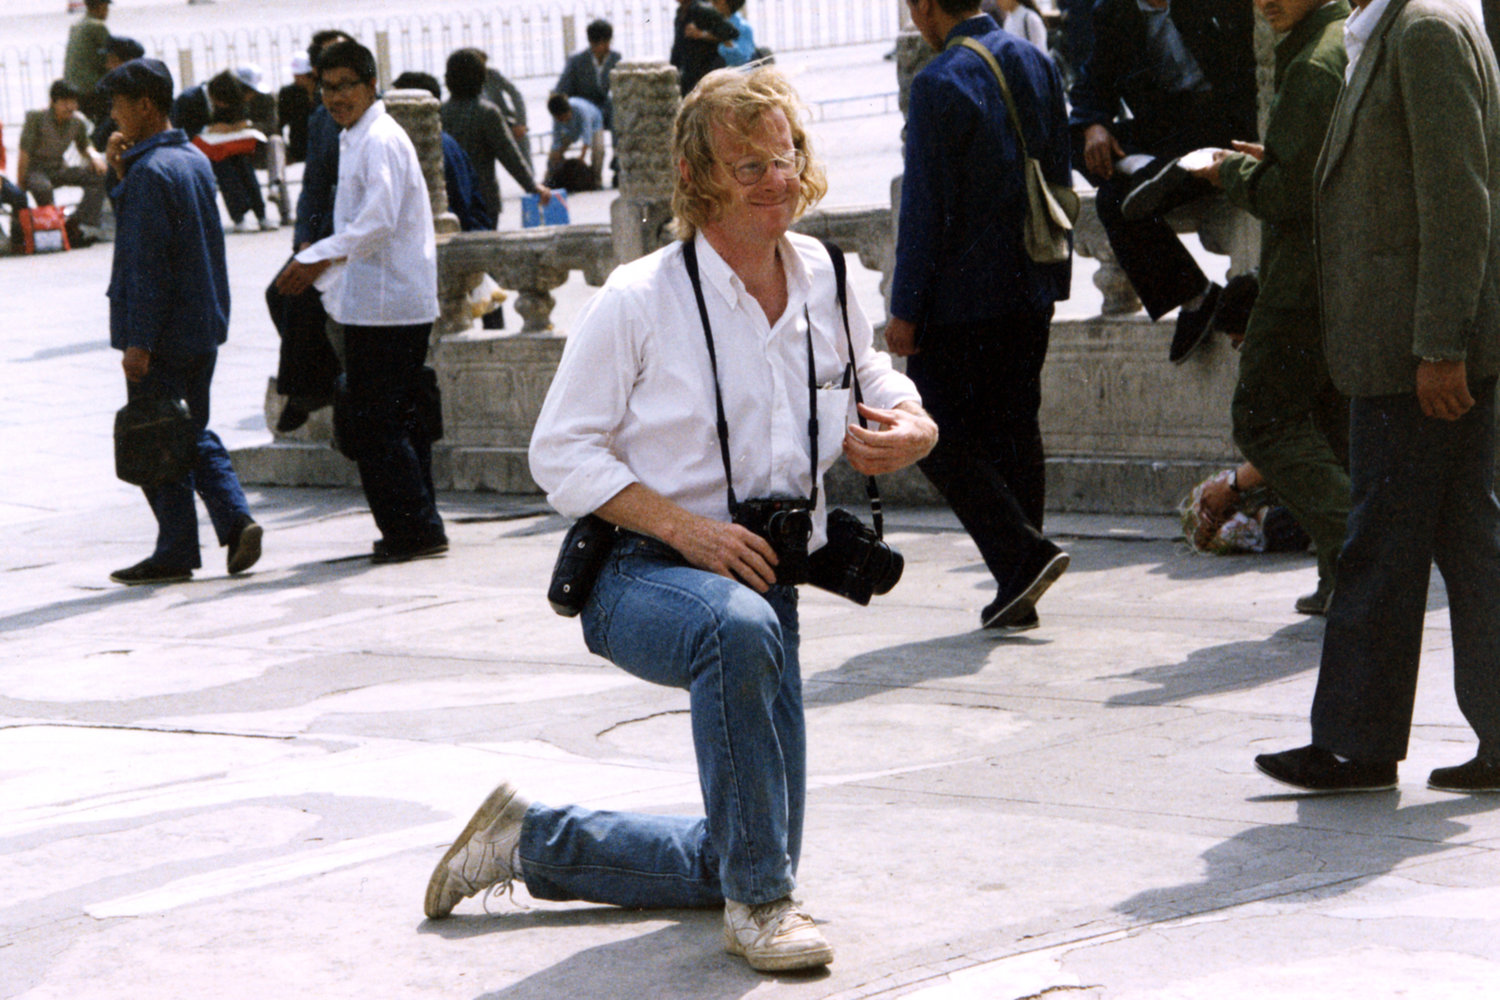 "Tiananmen Square uprising. Beijing, China, 1997.<span class=""photo-essays-link""><span class=""separator"">・</span><a href=""/photo-essays"">Photo-essays</a></span>"